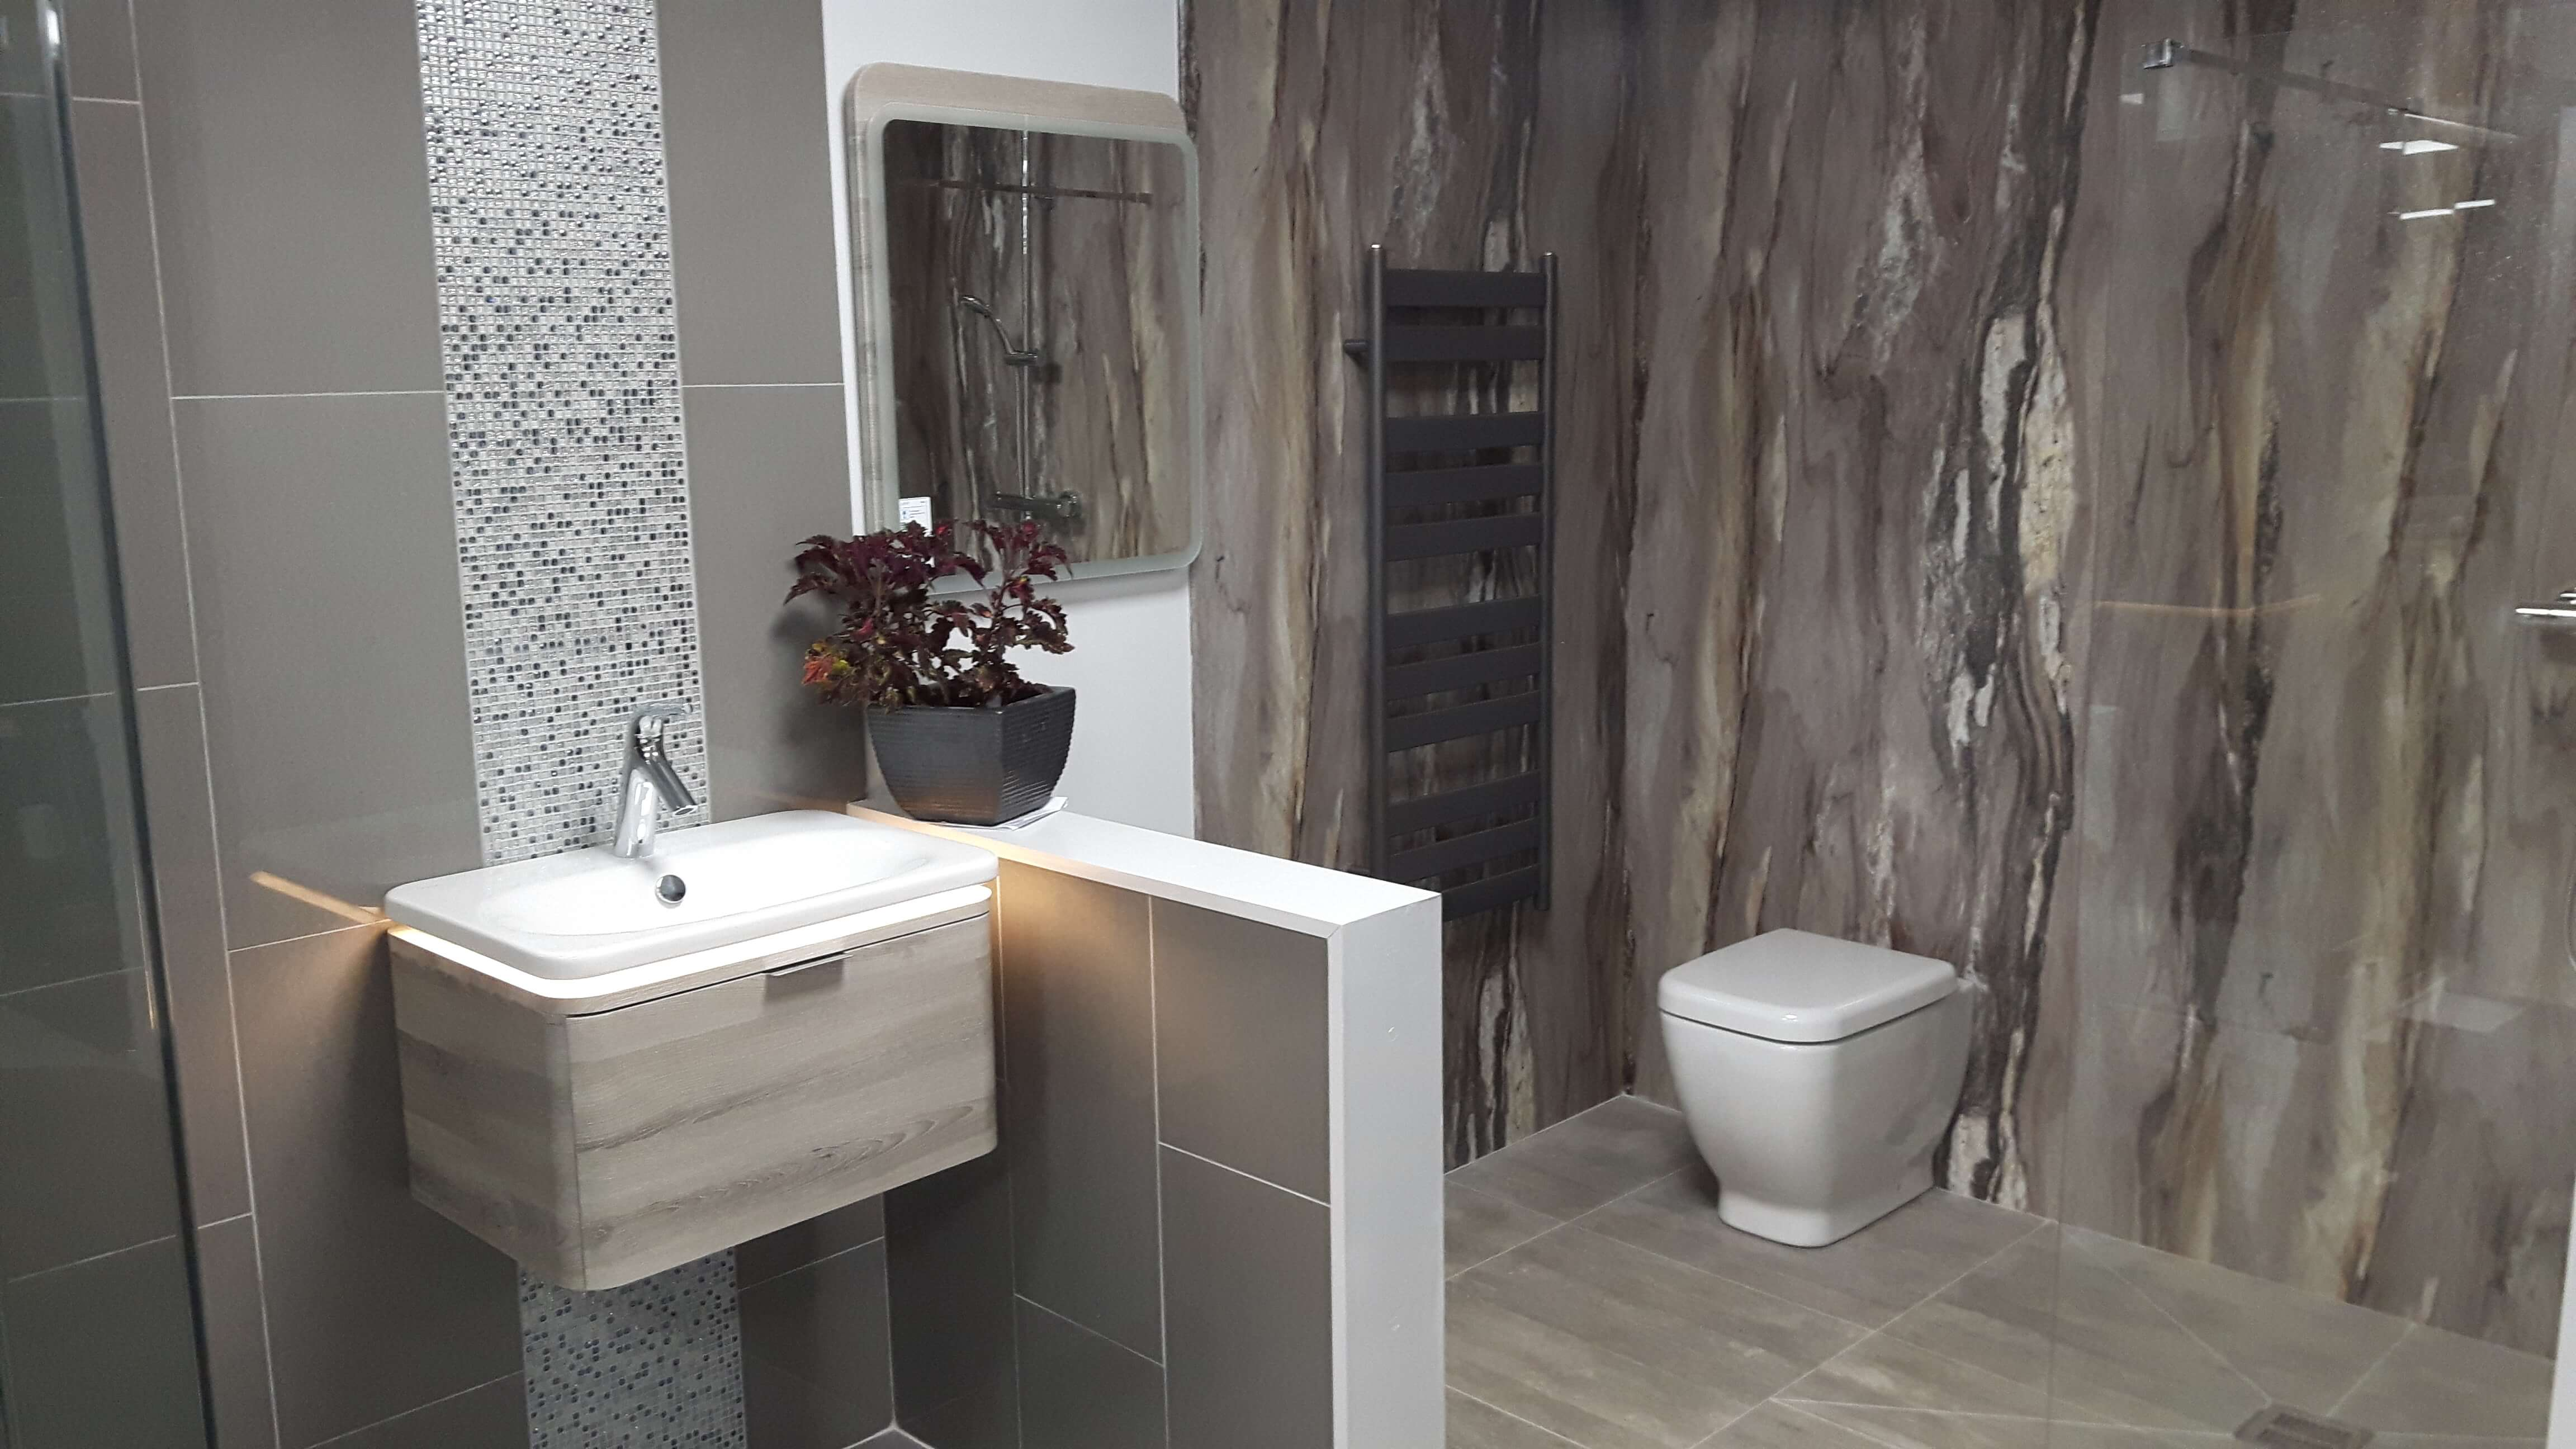 Probably The Largest Selection Of Tiles Flooring And Bathroom - Largest bathroom showroom